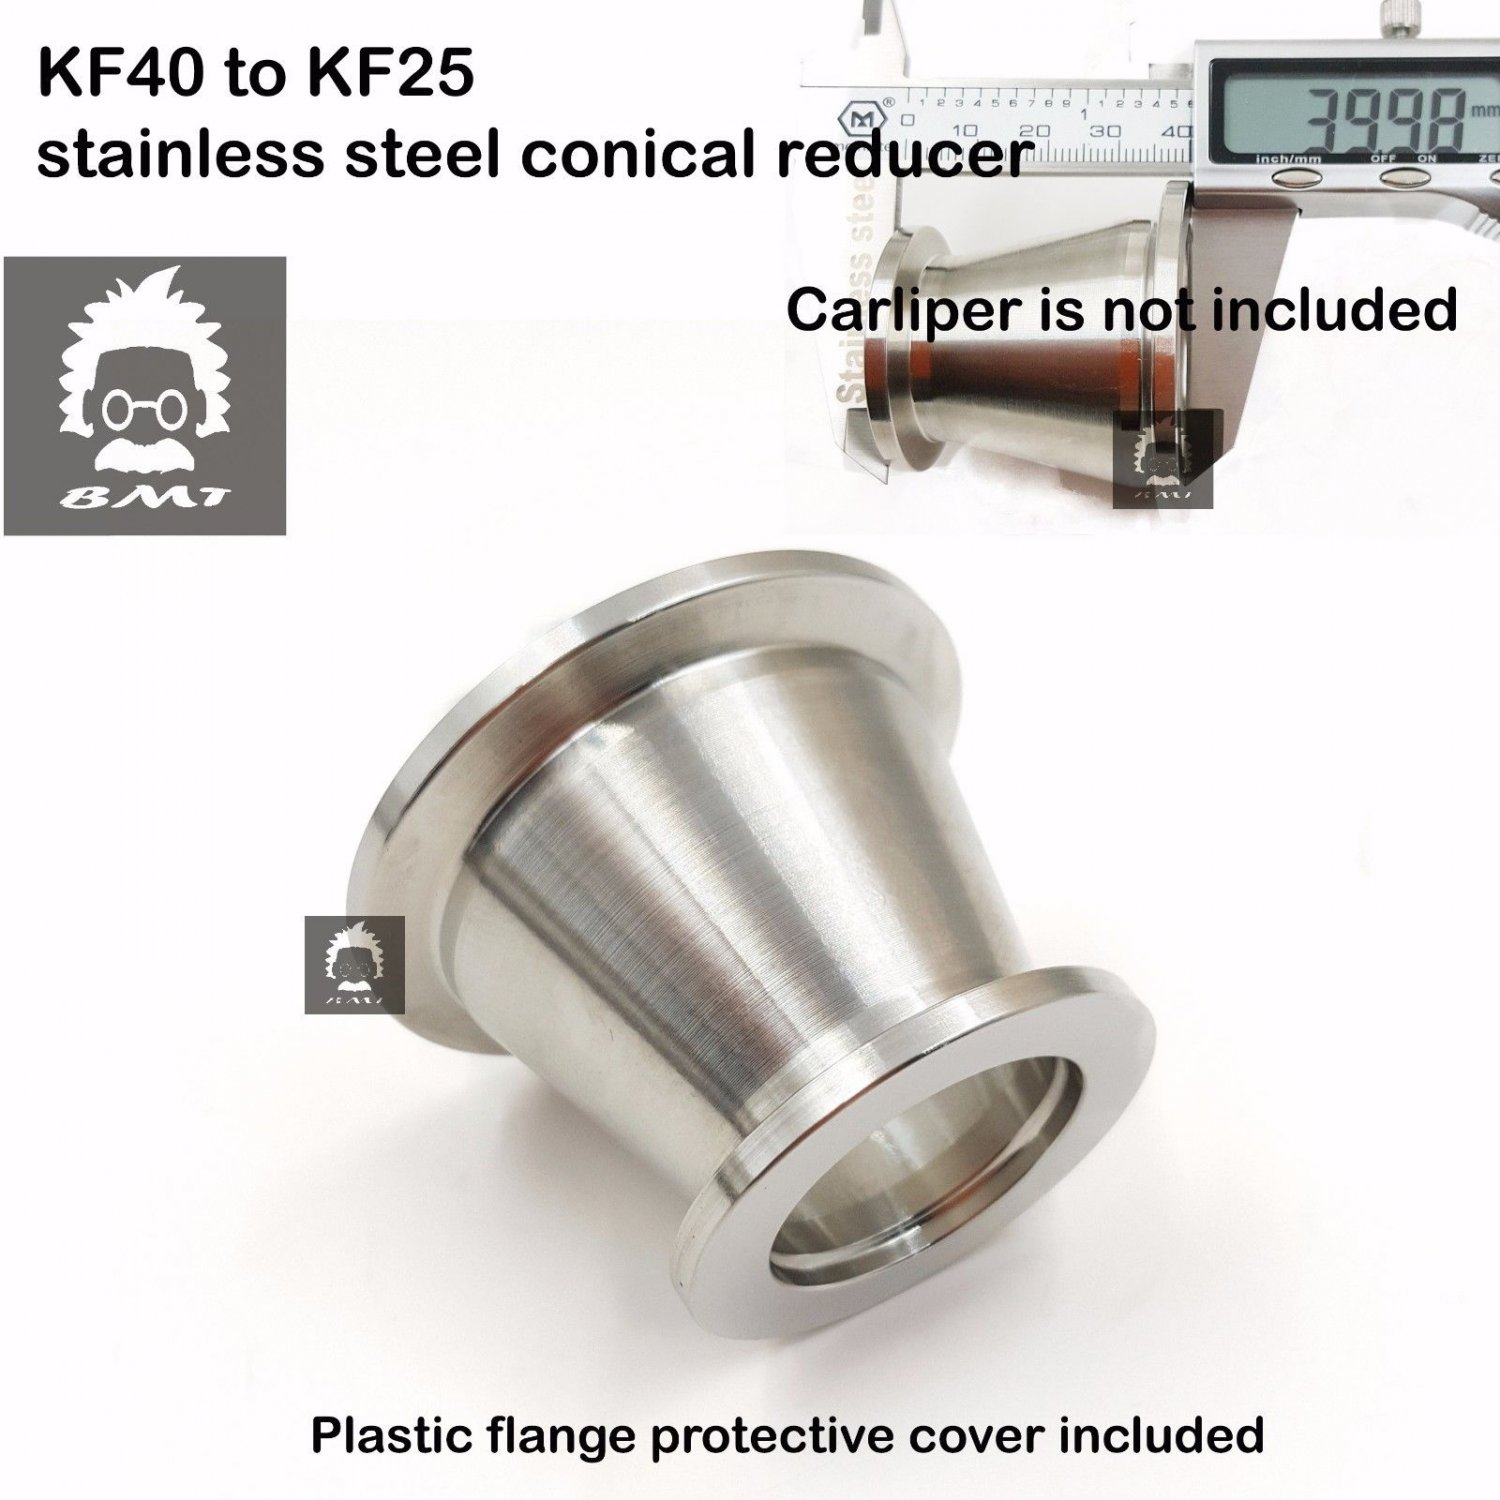 KF40 (NW40) to KF25 (NW25) Flange vacuum conical reducer, Stainless steel 304